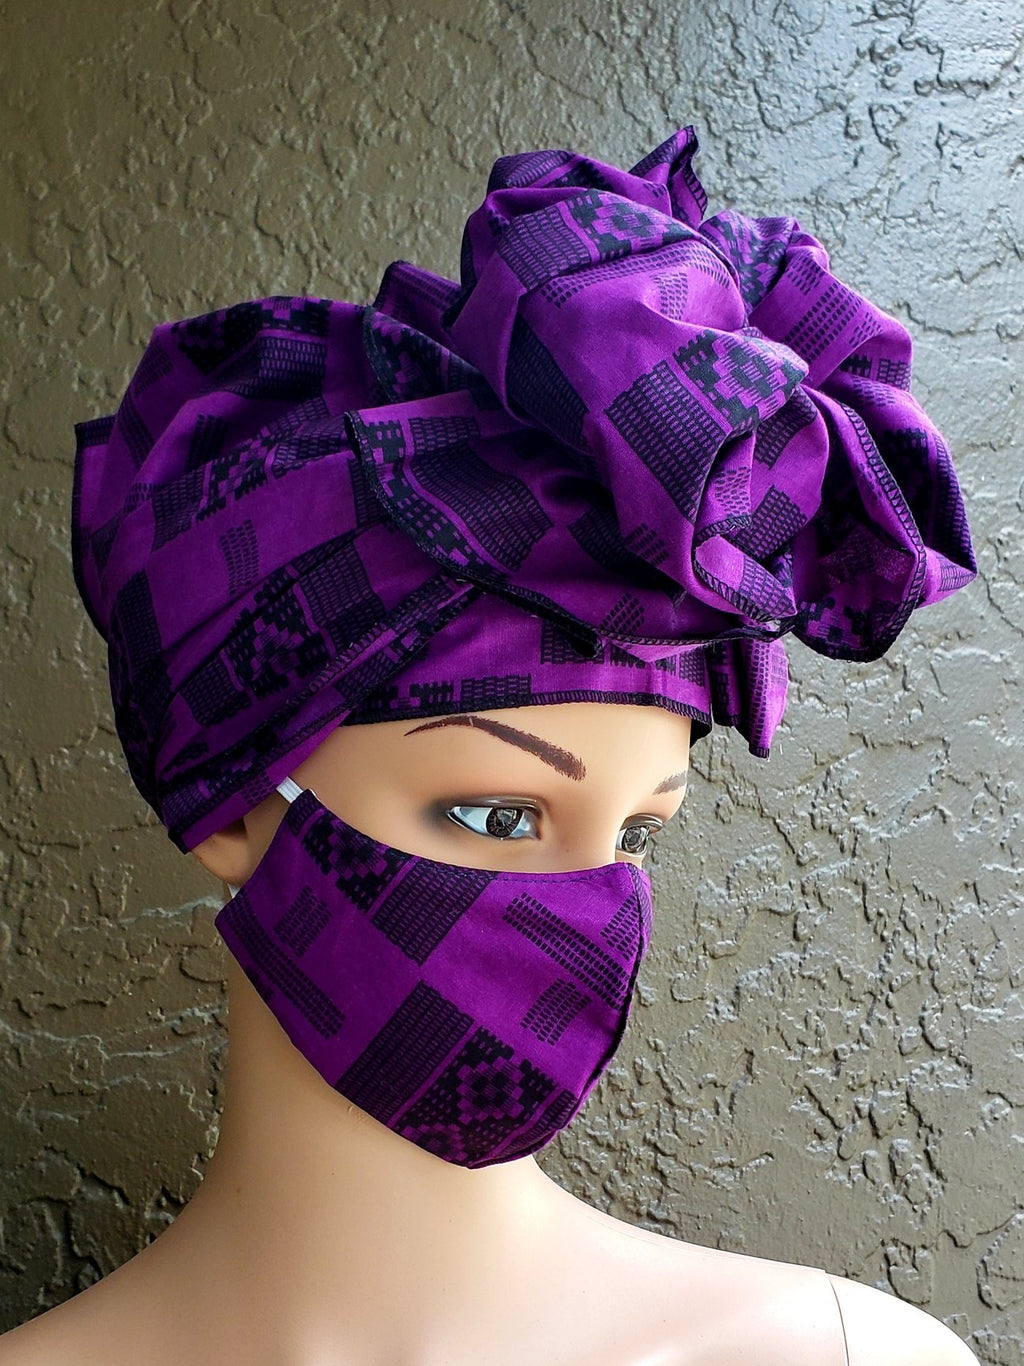 Fashion African Print Mask and Full Headwrap Purple